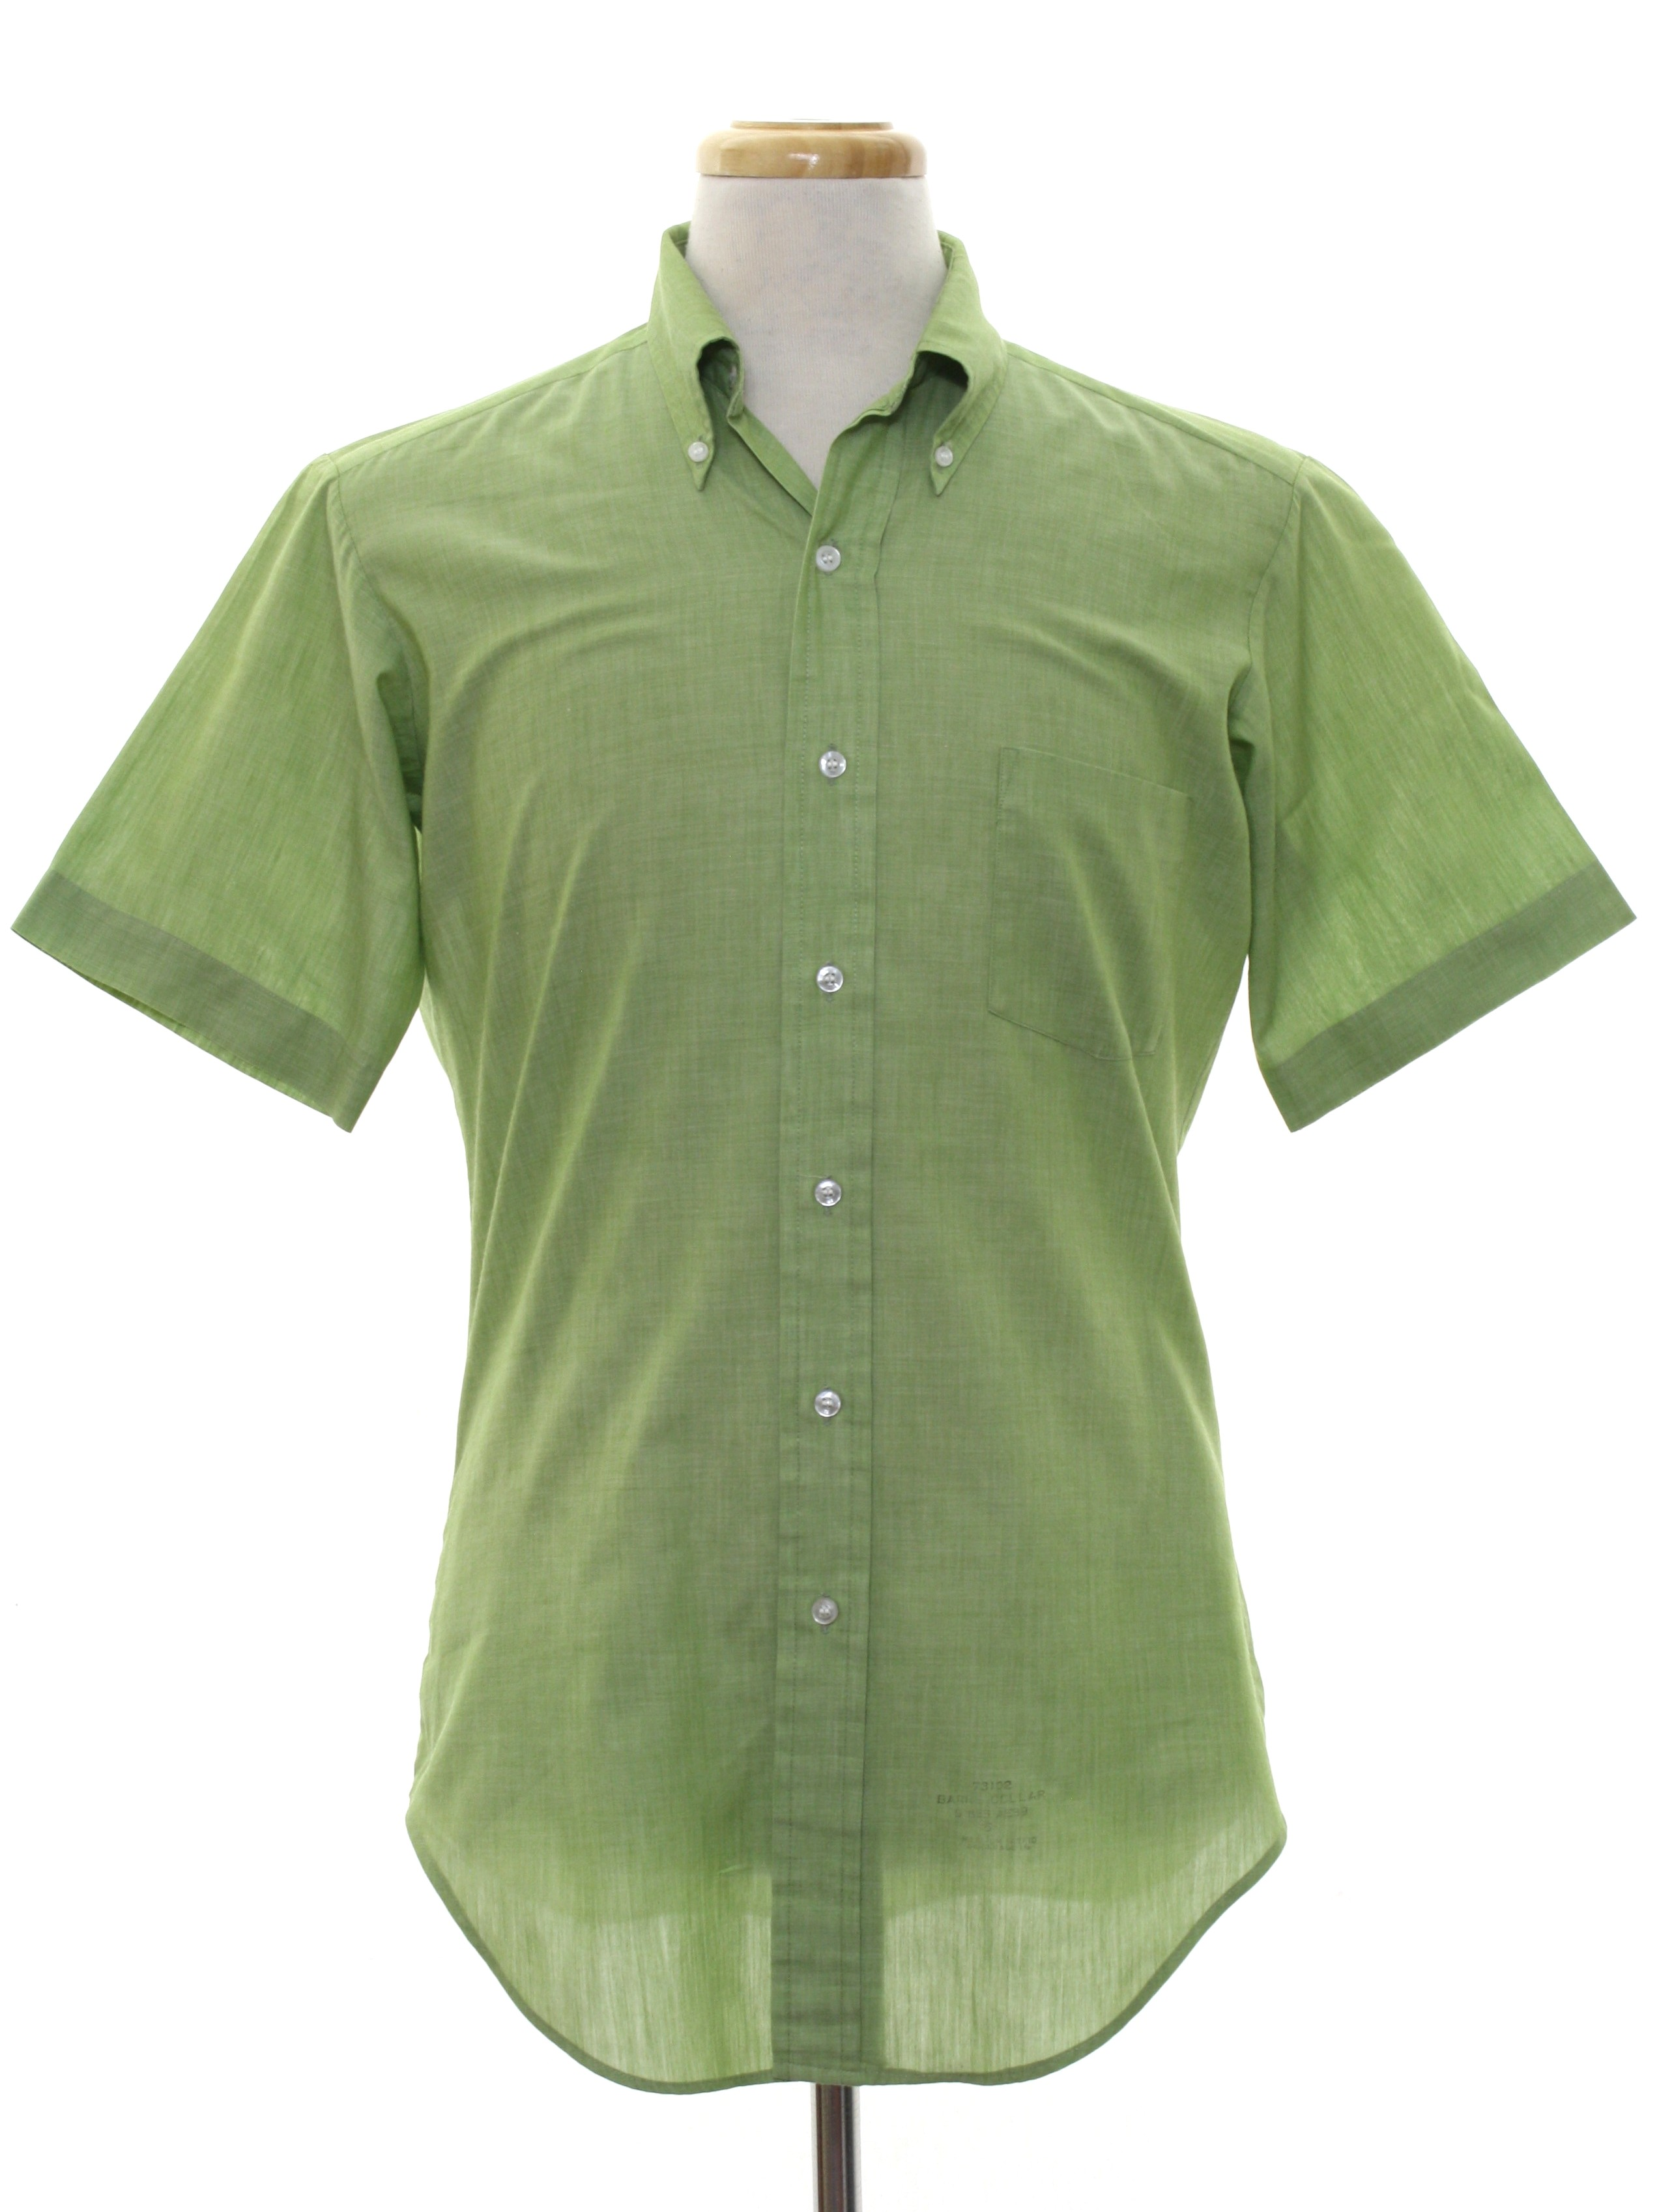 739b4934245 Sixties Sears Mens Store Shirt: Late 60s or early 70s -Sears Mens ...